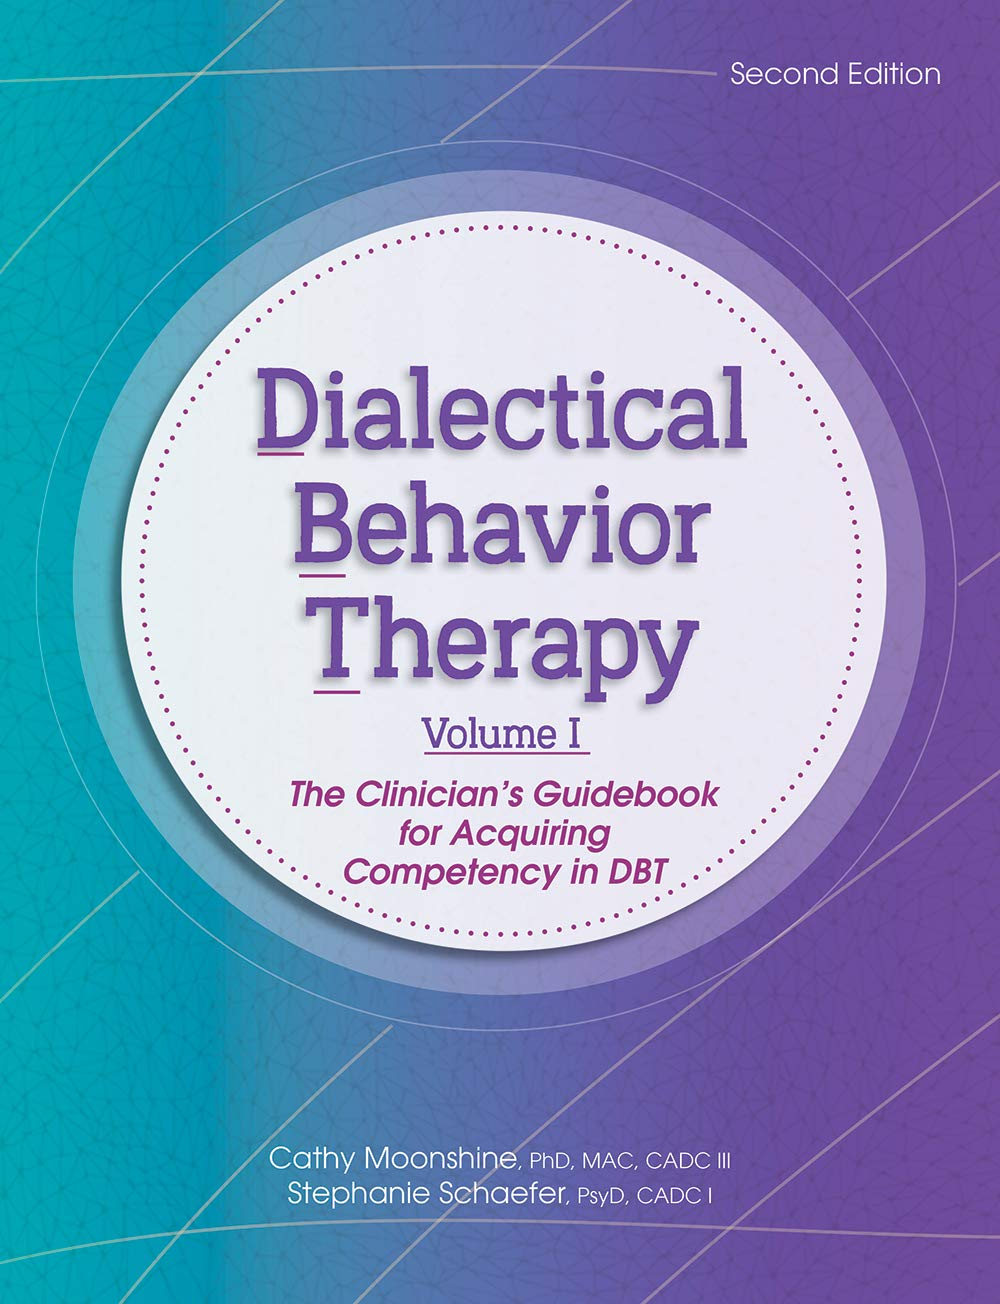 Image OfDialectical Behavior Therapy, Vol 1, 2nd Edition: The Clinician's Guidebook For Acquiring Competency In DBT